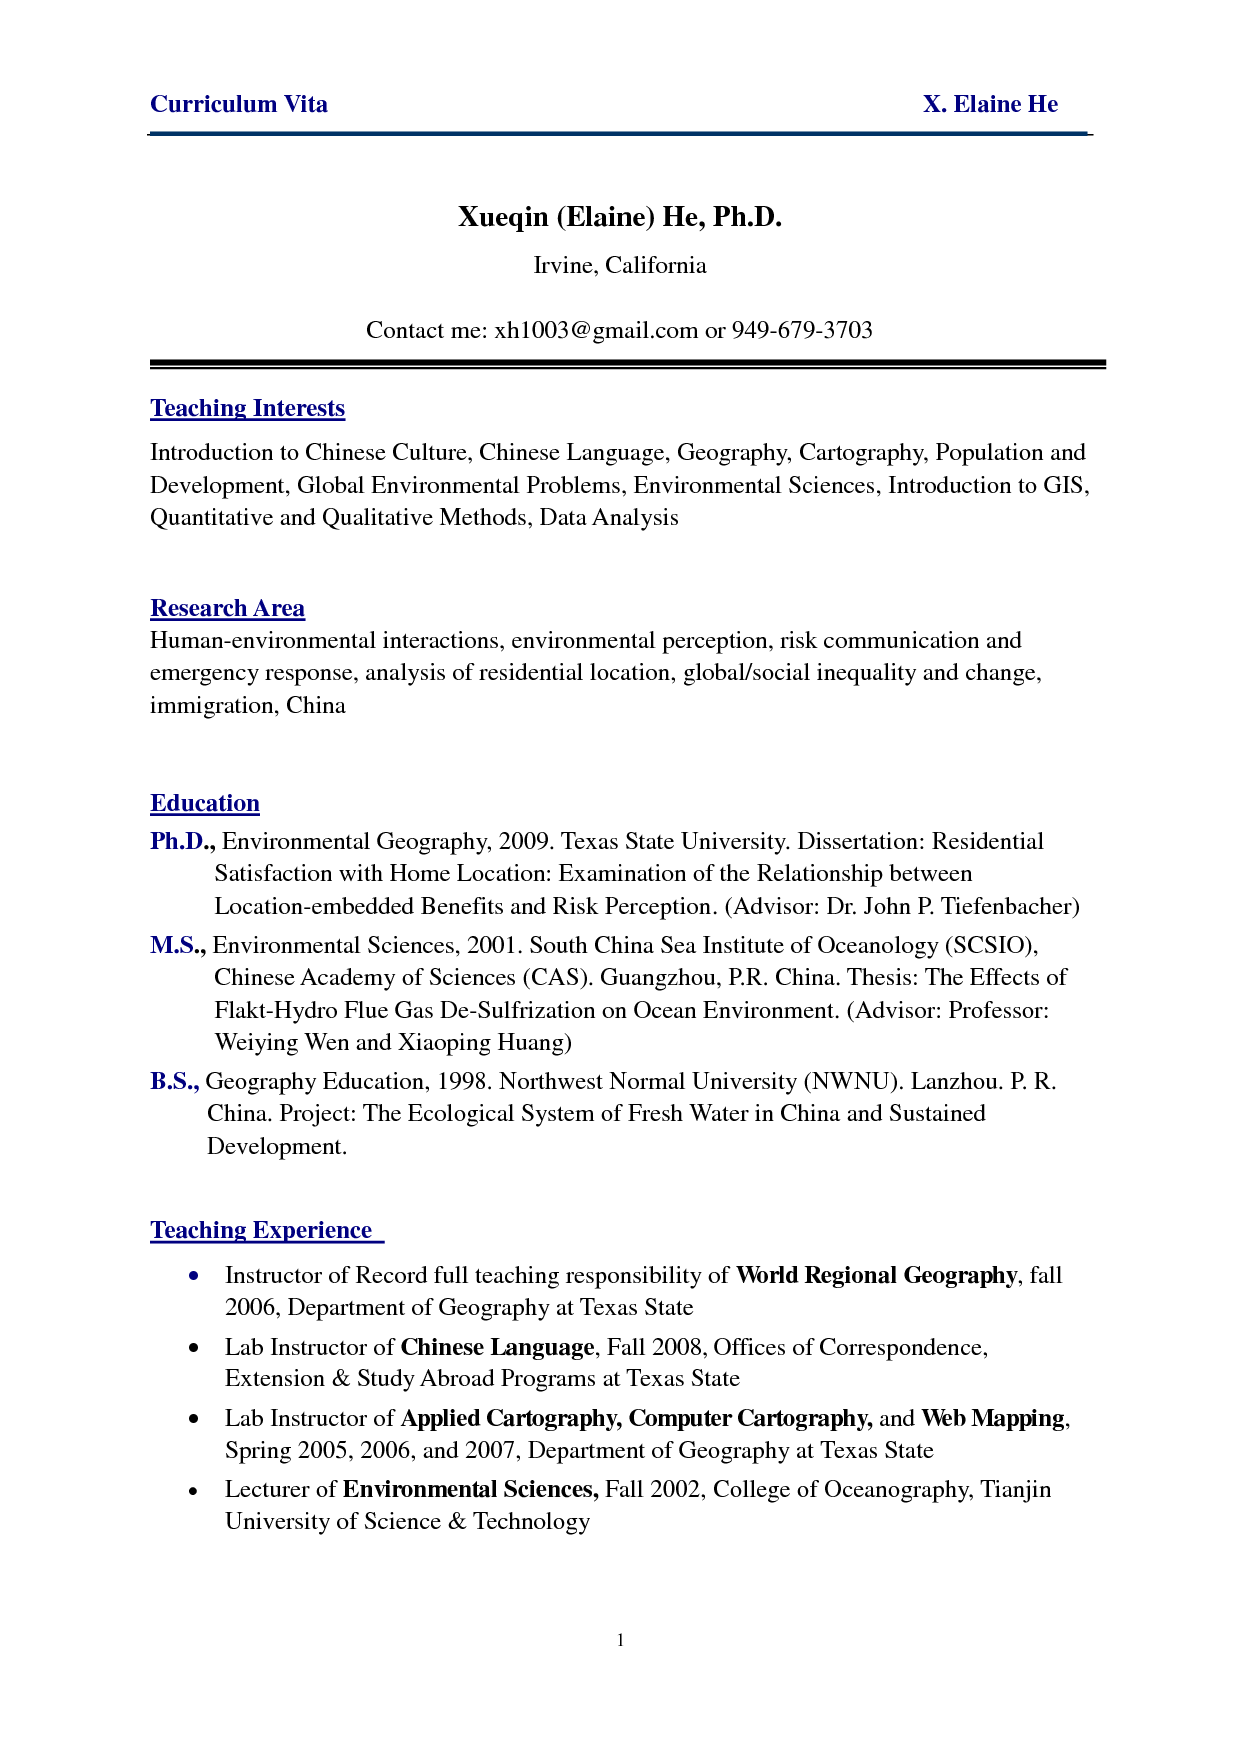 sample lpn resume image 3579575386 jpg lvn resume sample job ...